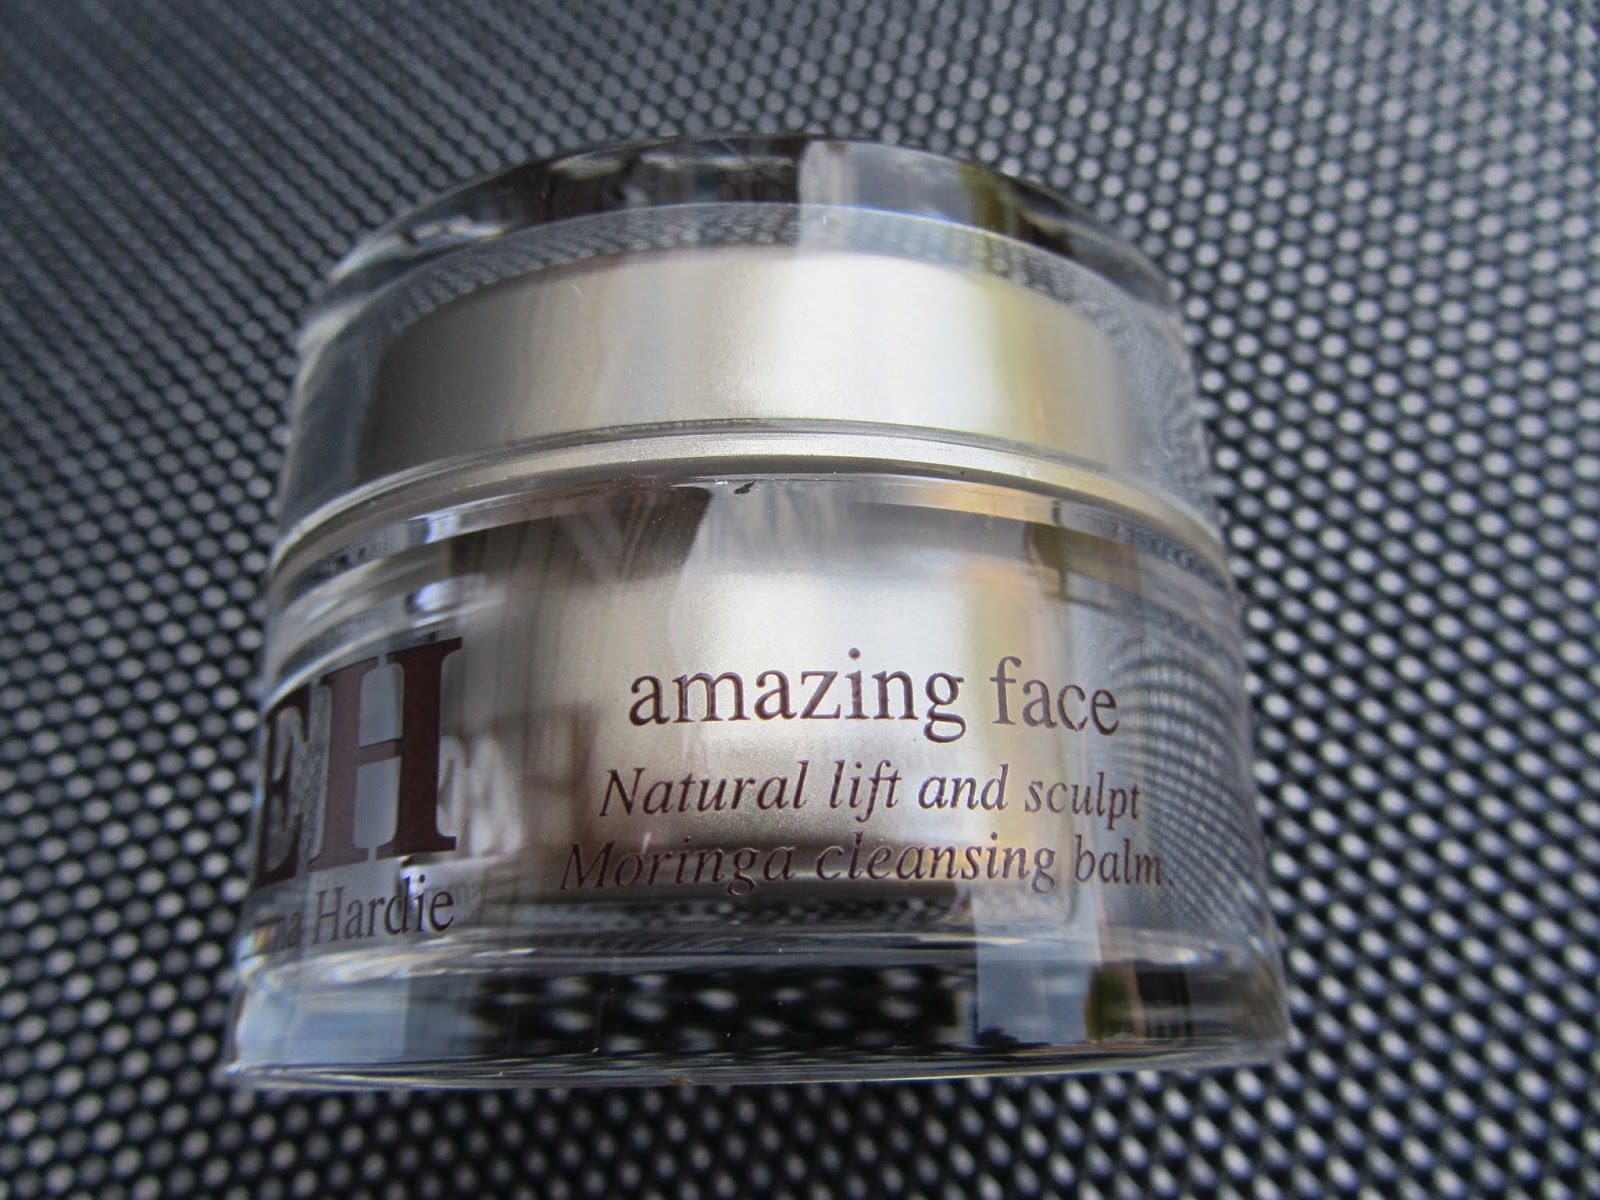 Очищающий бальзам Emma Hardie Amazing Face Natural Lift and Sculpt Moringa Cleansing Balm